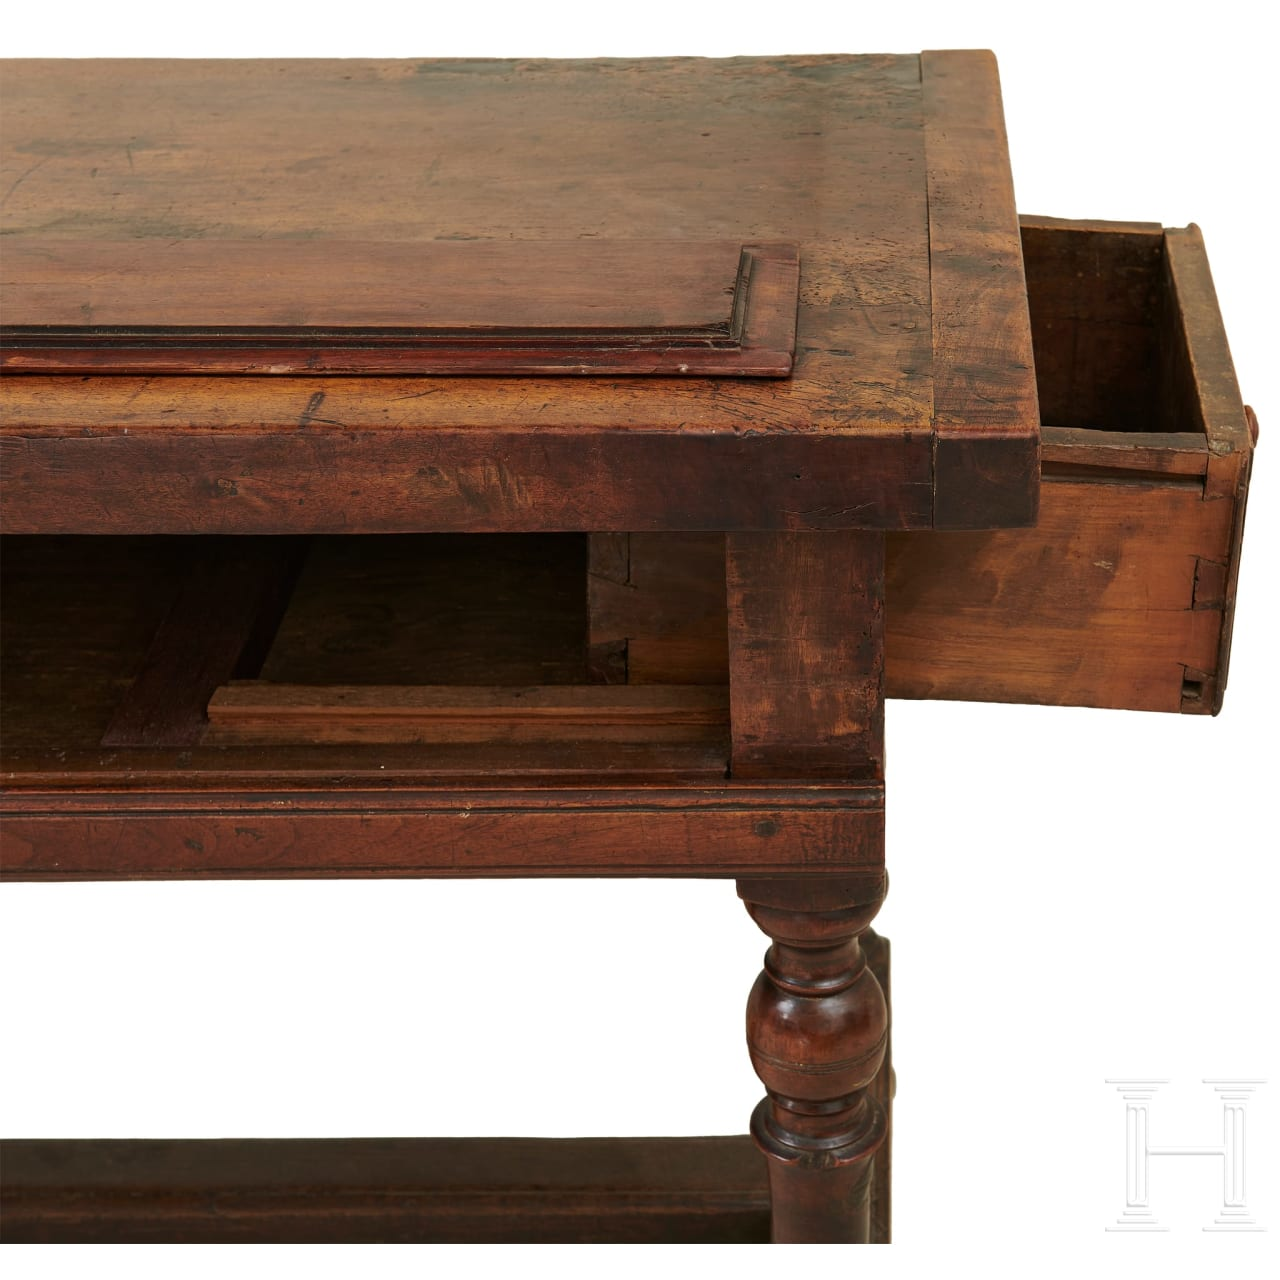 A rare, large Italian refectory table in walnut from the estate of Max Jacob Friedländer, 17th century